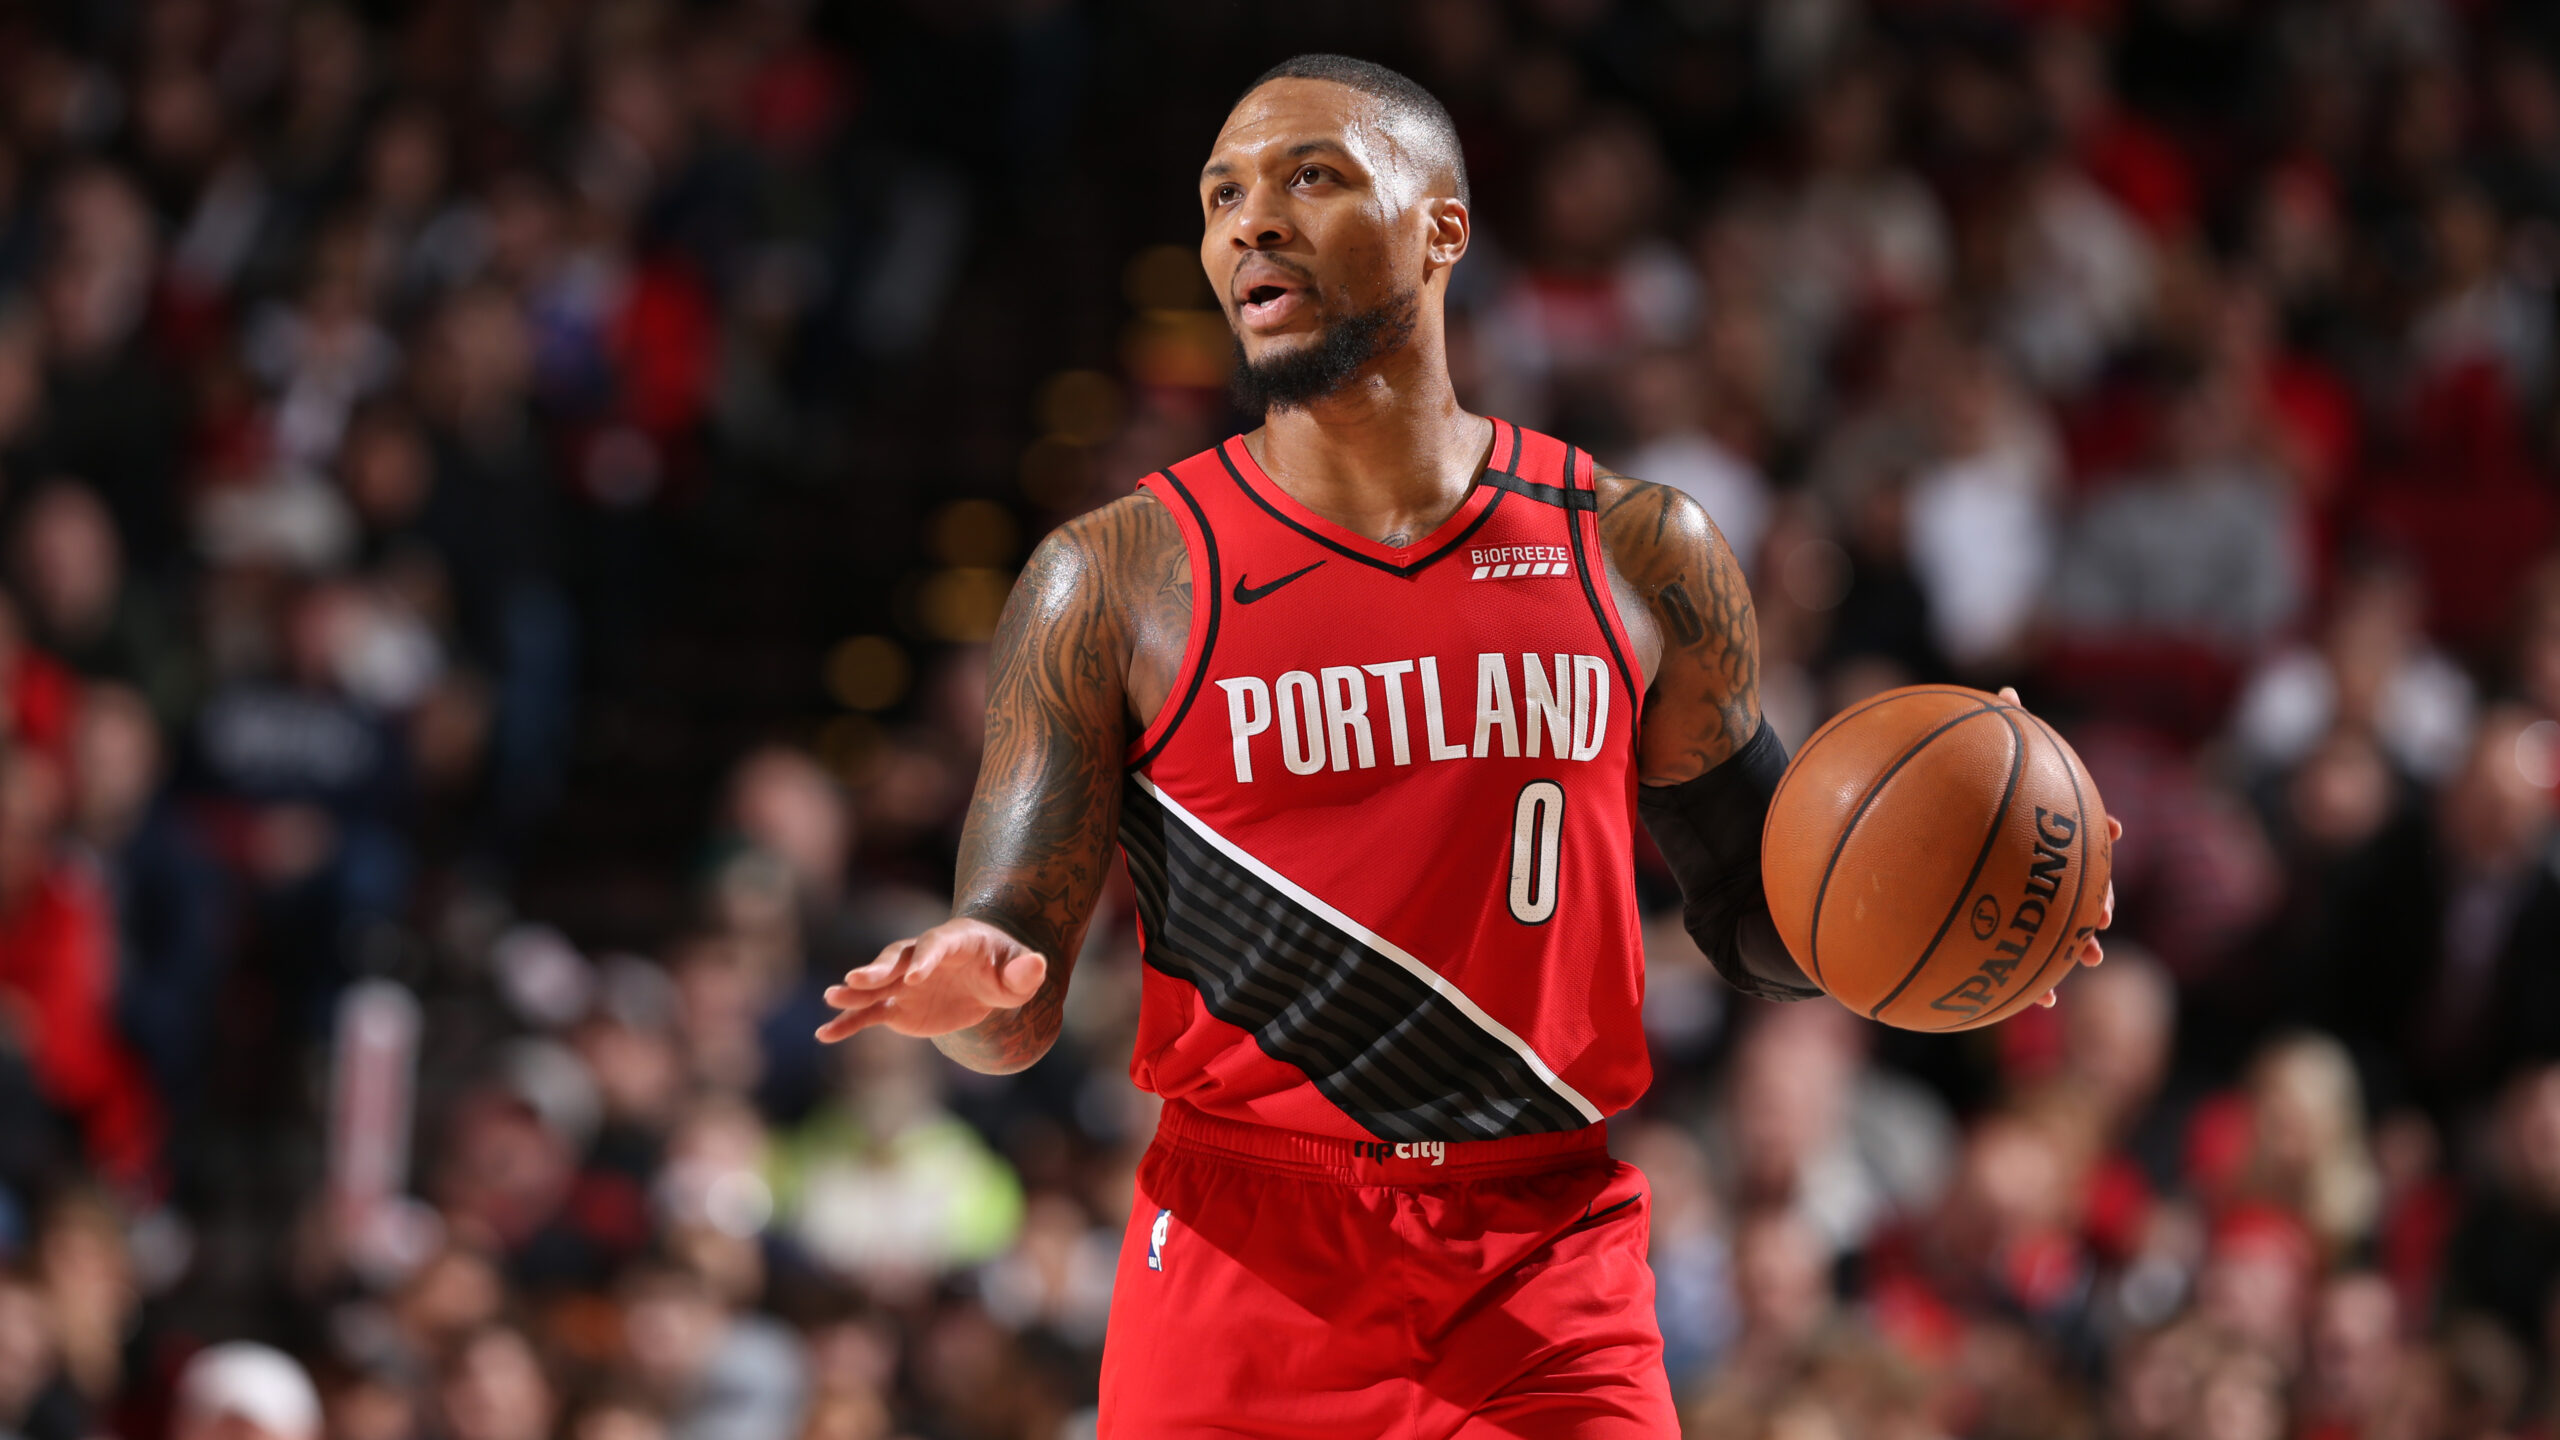 Blazers' Damian Lillard records first career triple-double